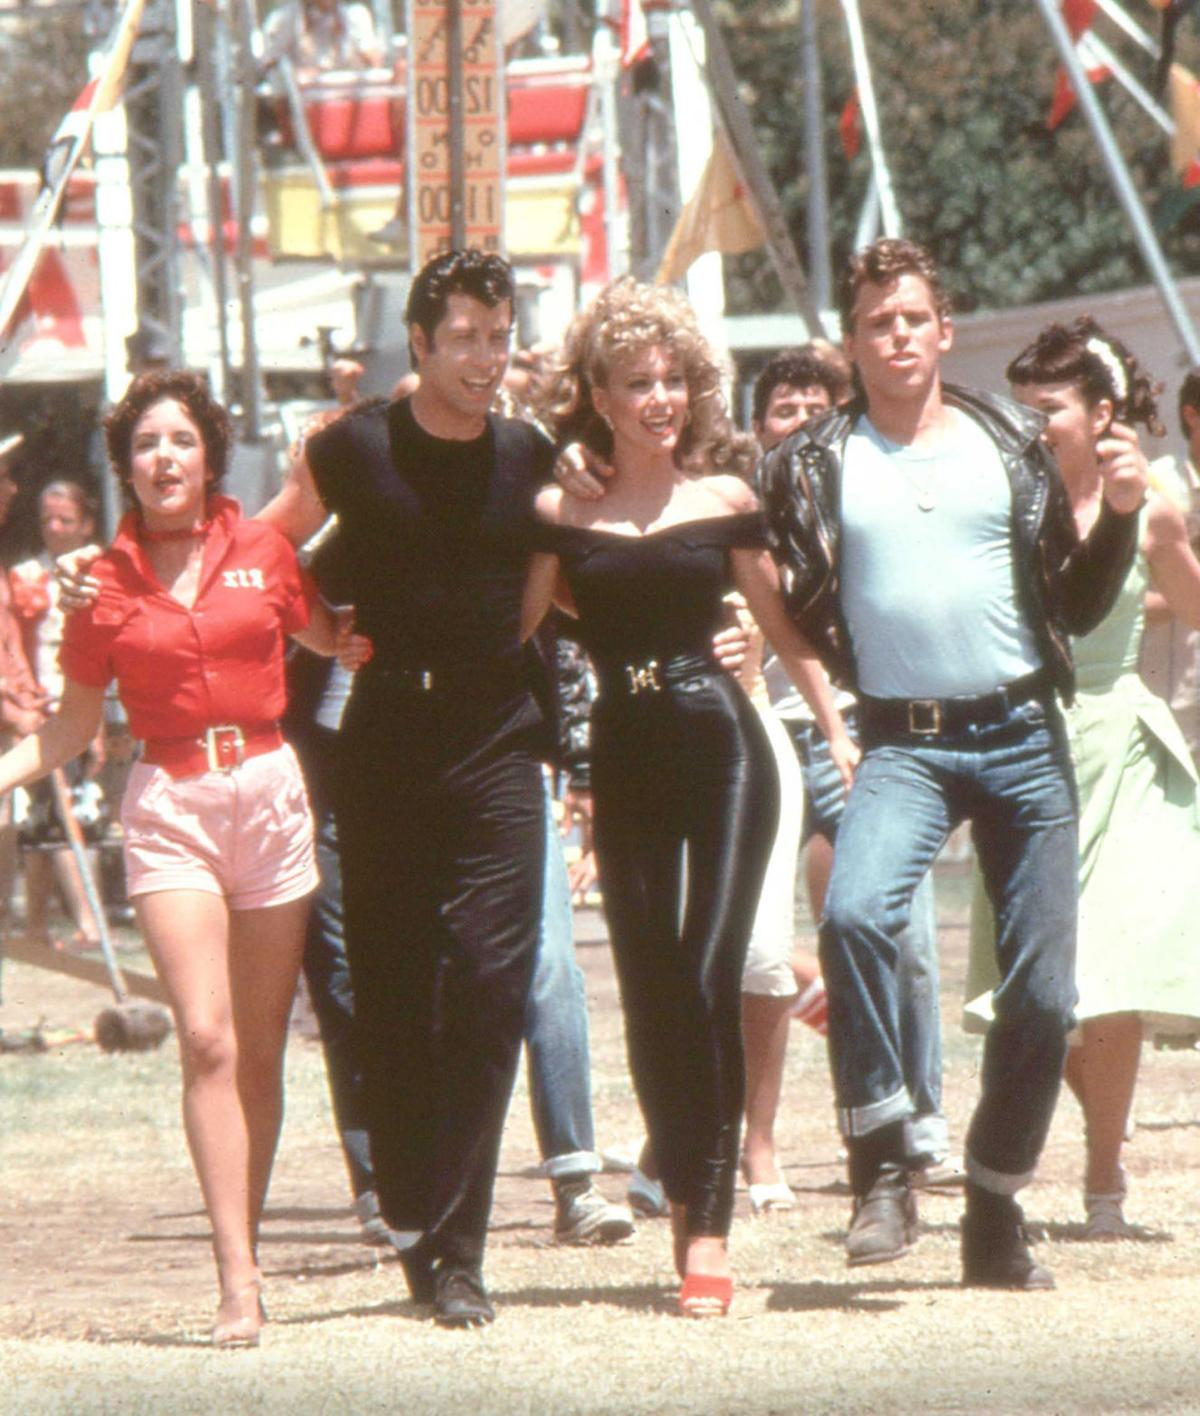 Still The Word Clic Hit Movie Musical Grease Turns 40